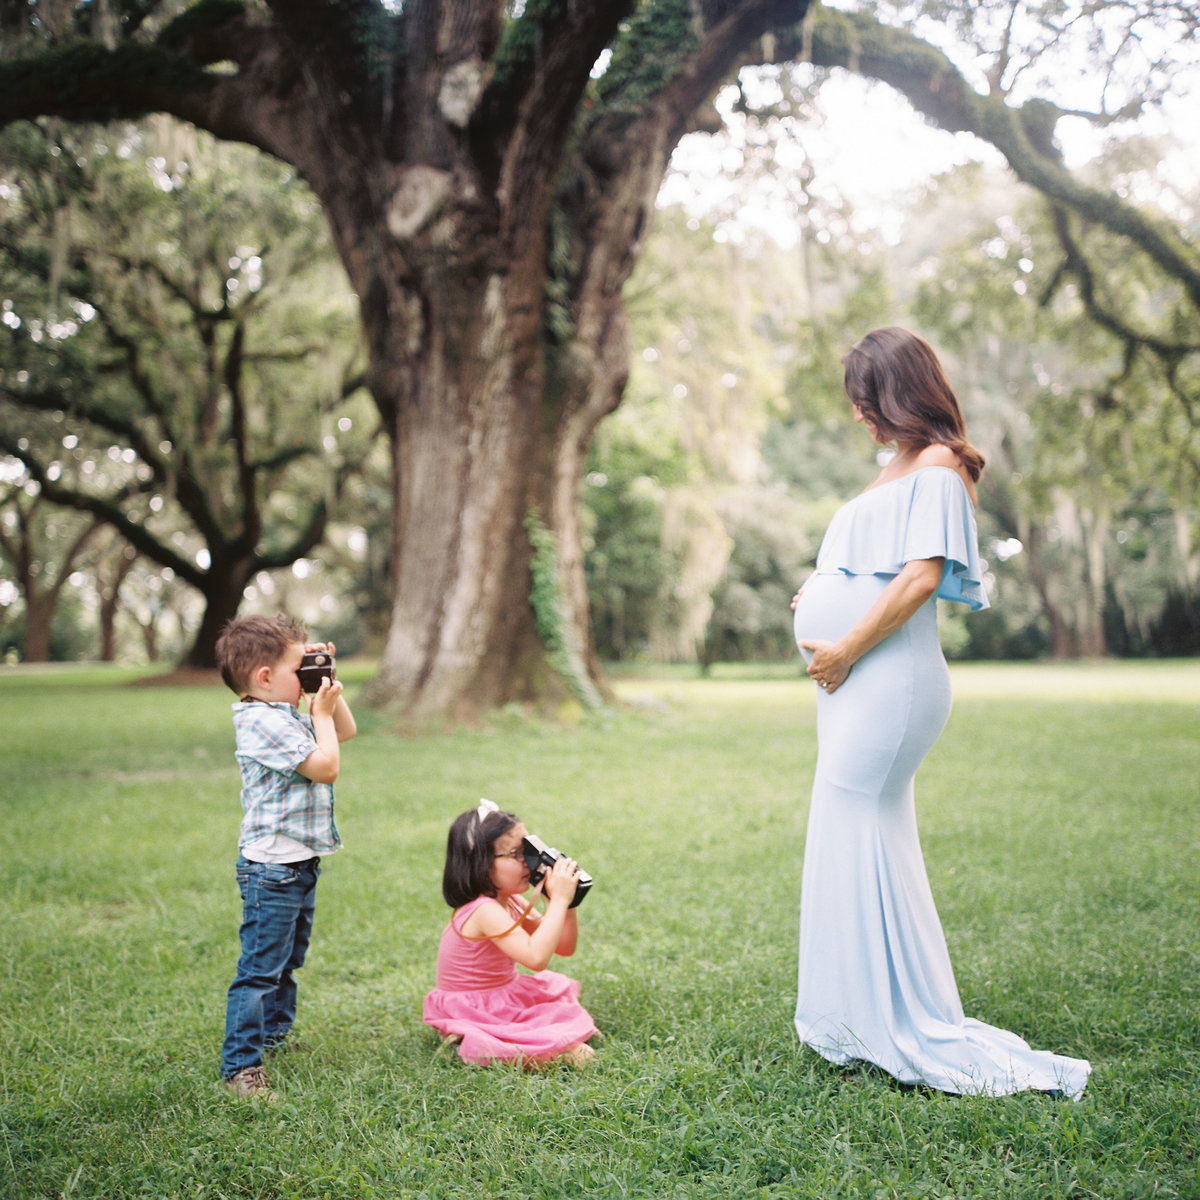 charleston-family-portrait-photographer-philip-casey-photography-006